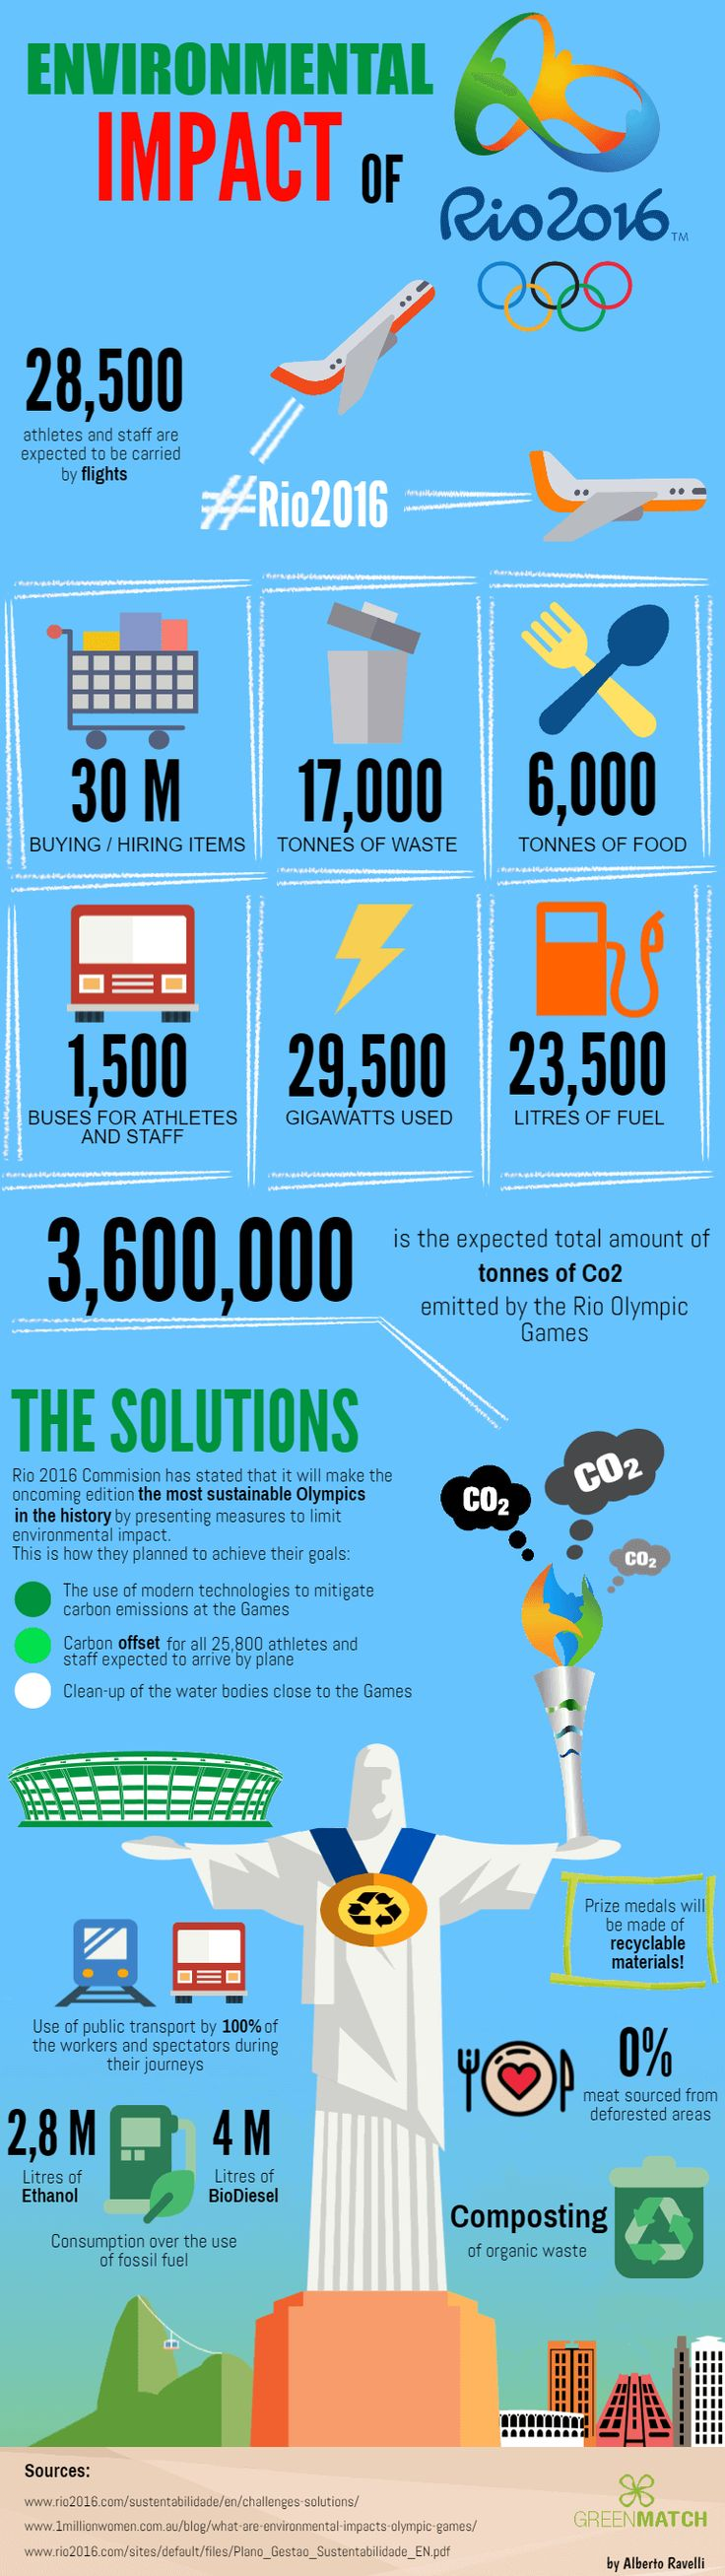 The Astounding Environmental Impact Of The #Rio2016 Olympic Games #Infographic